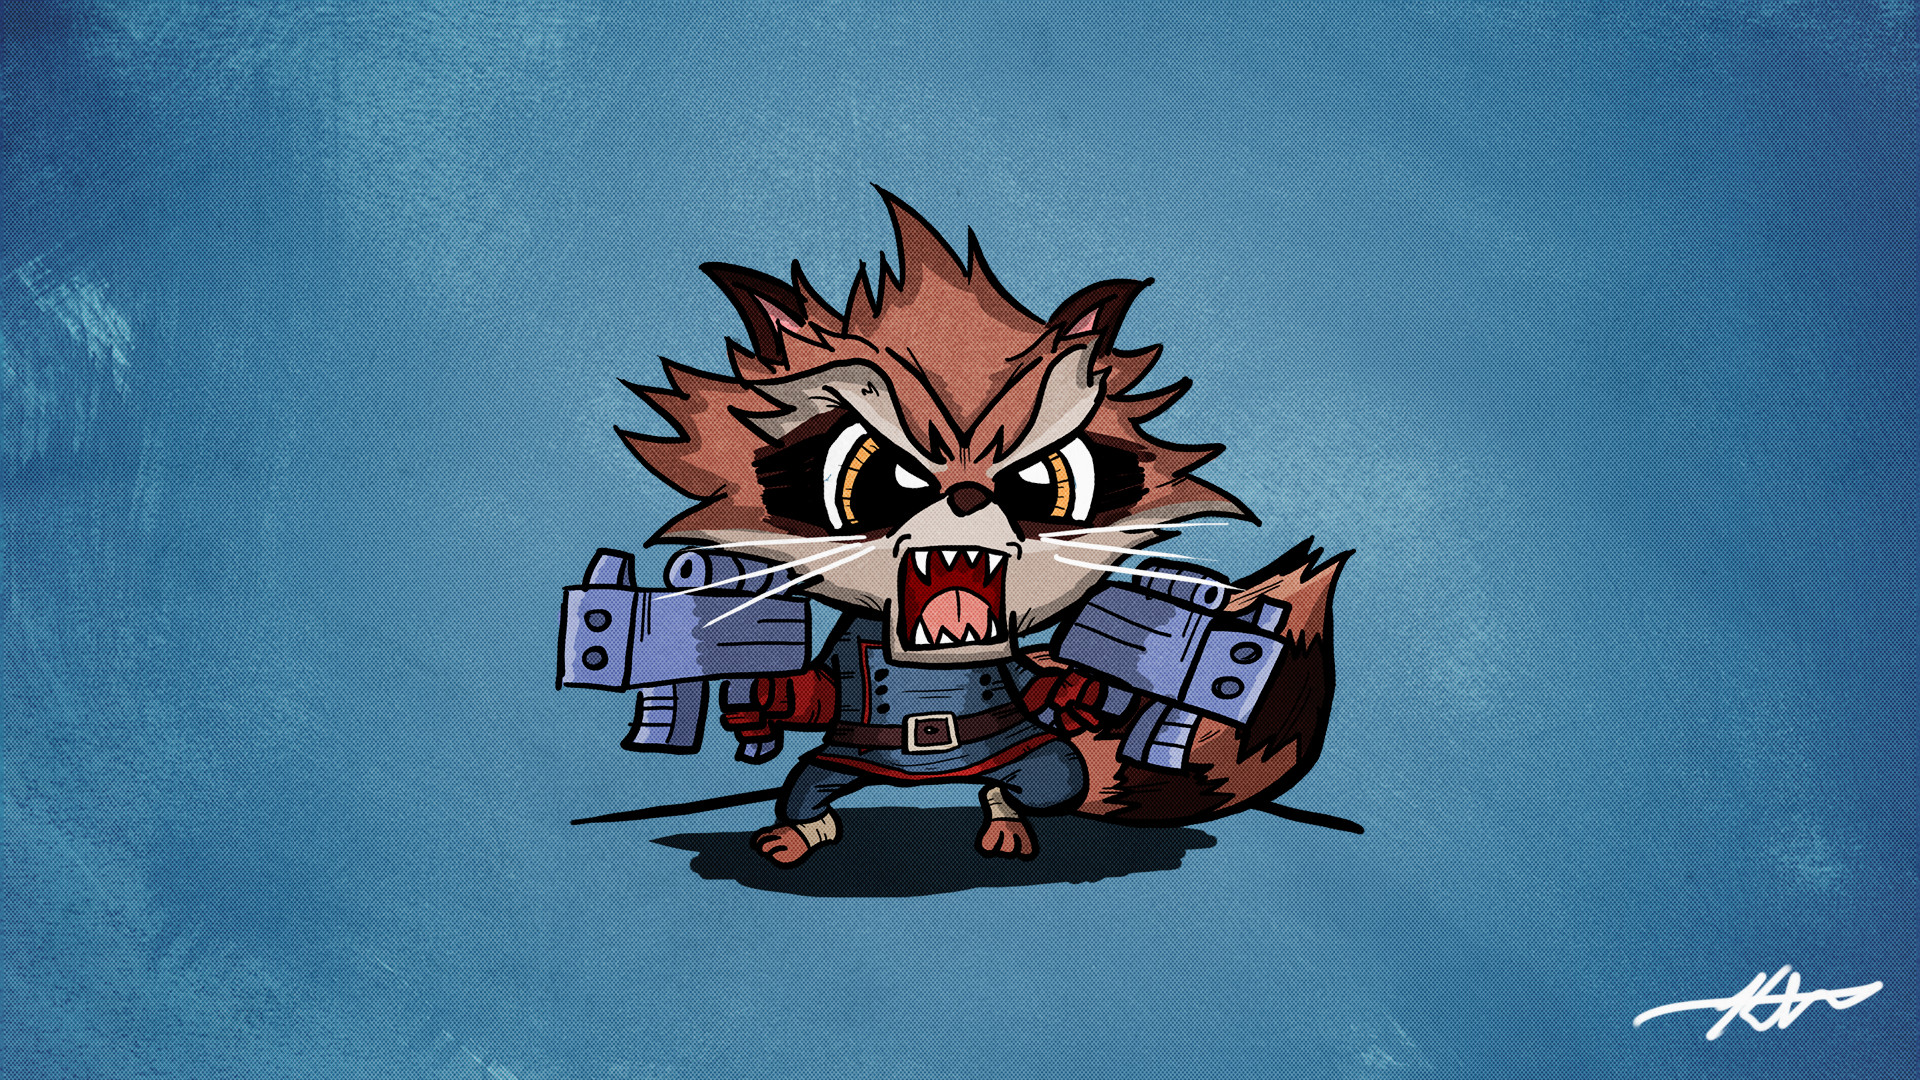 1920x1080 Rocket Raccoon - Guardians of the Galaxy wallpaper by BiigM on .